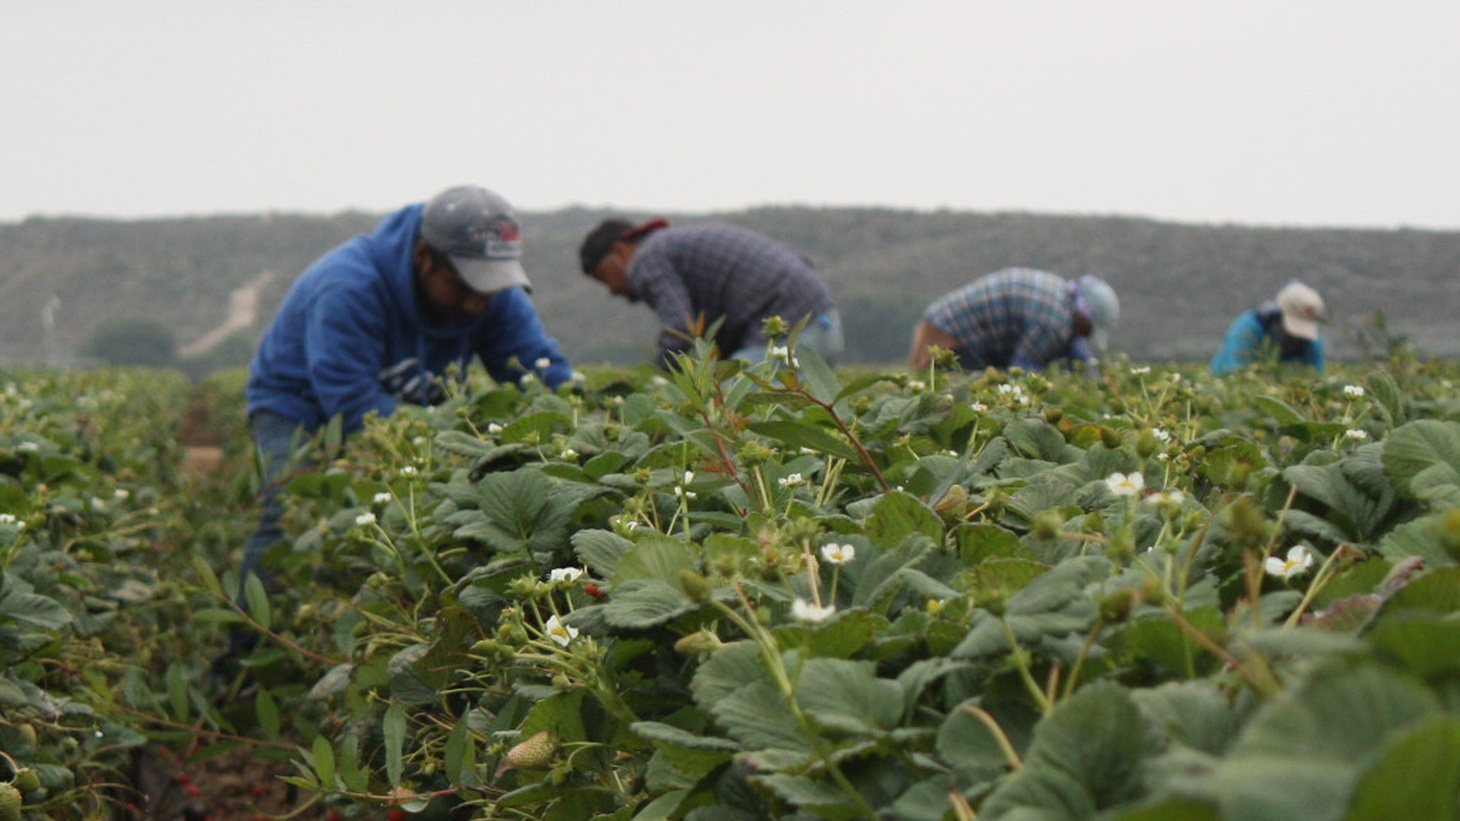 Five days after the inauguration of President Donald Trump, KCRW airs a special live broadcast from Oxnard about what the Trump Administration's immigration policies might mean for undocumented farmworkers in California, with a focus on the strawberry fields and citrus groves of Ventura County.  Hosted by Jonathan Bastian.